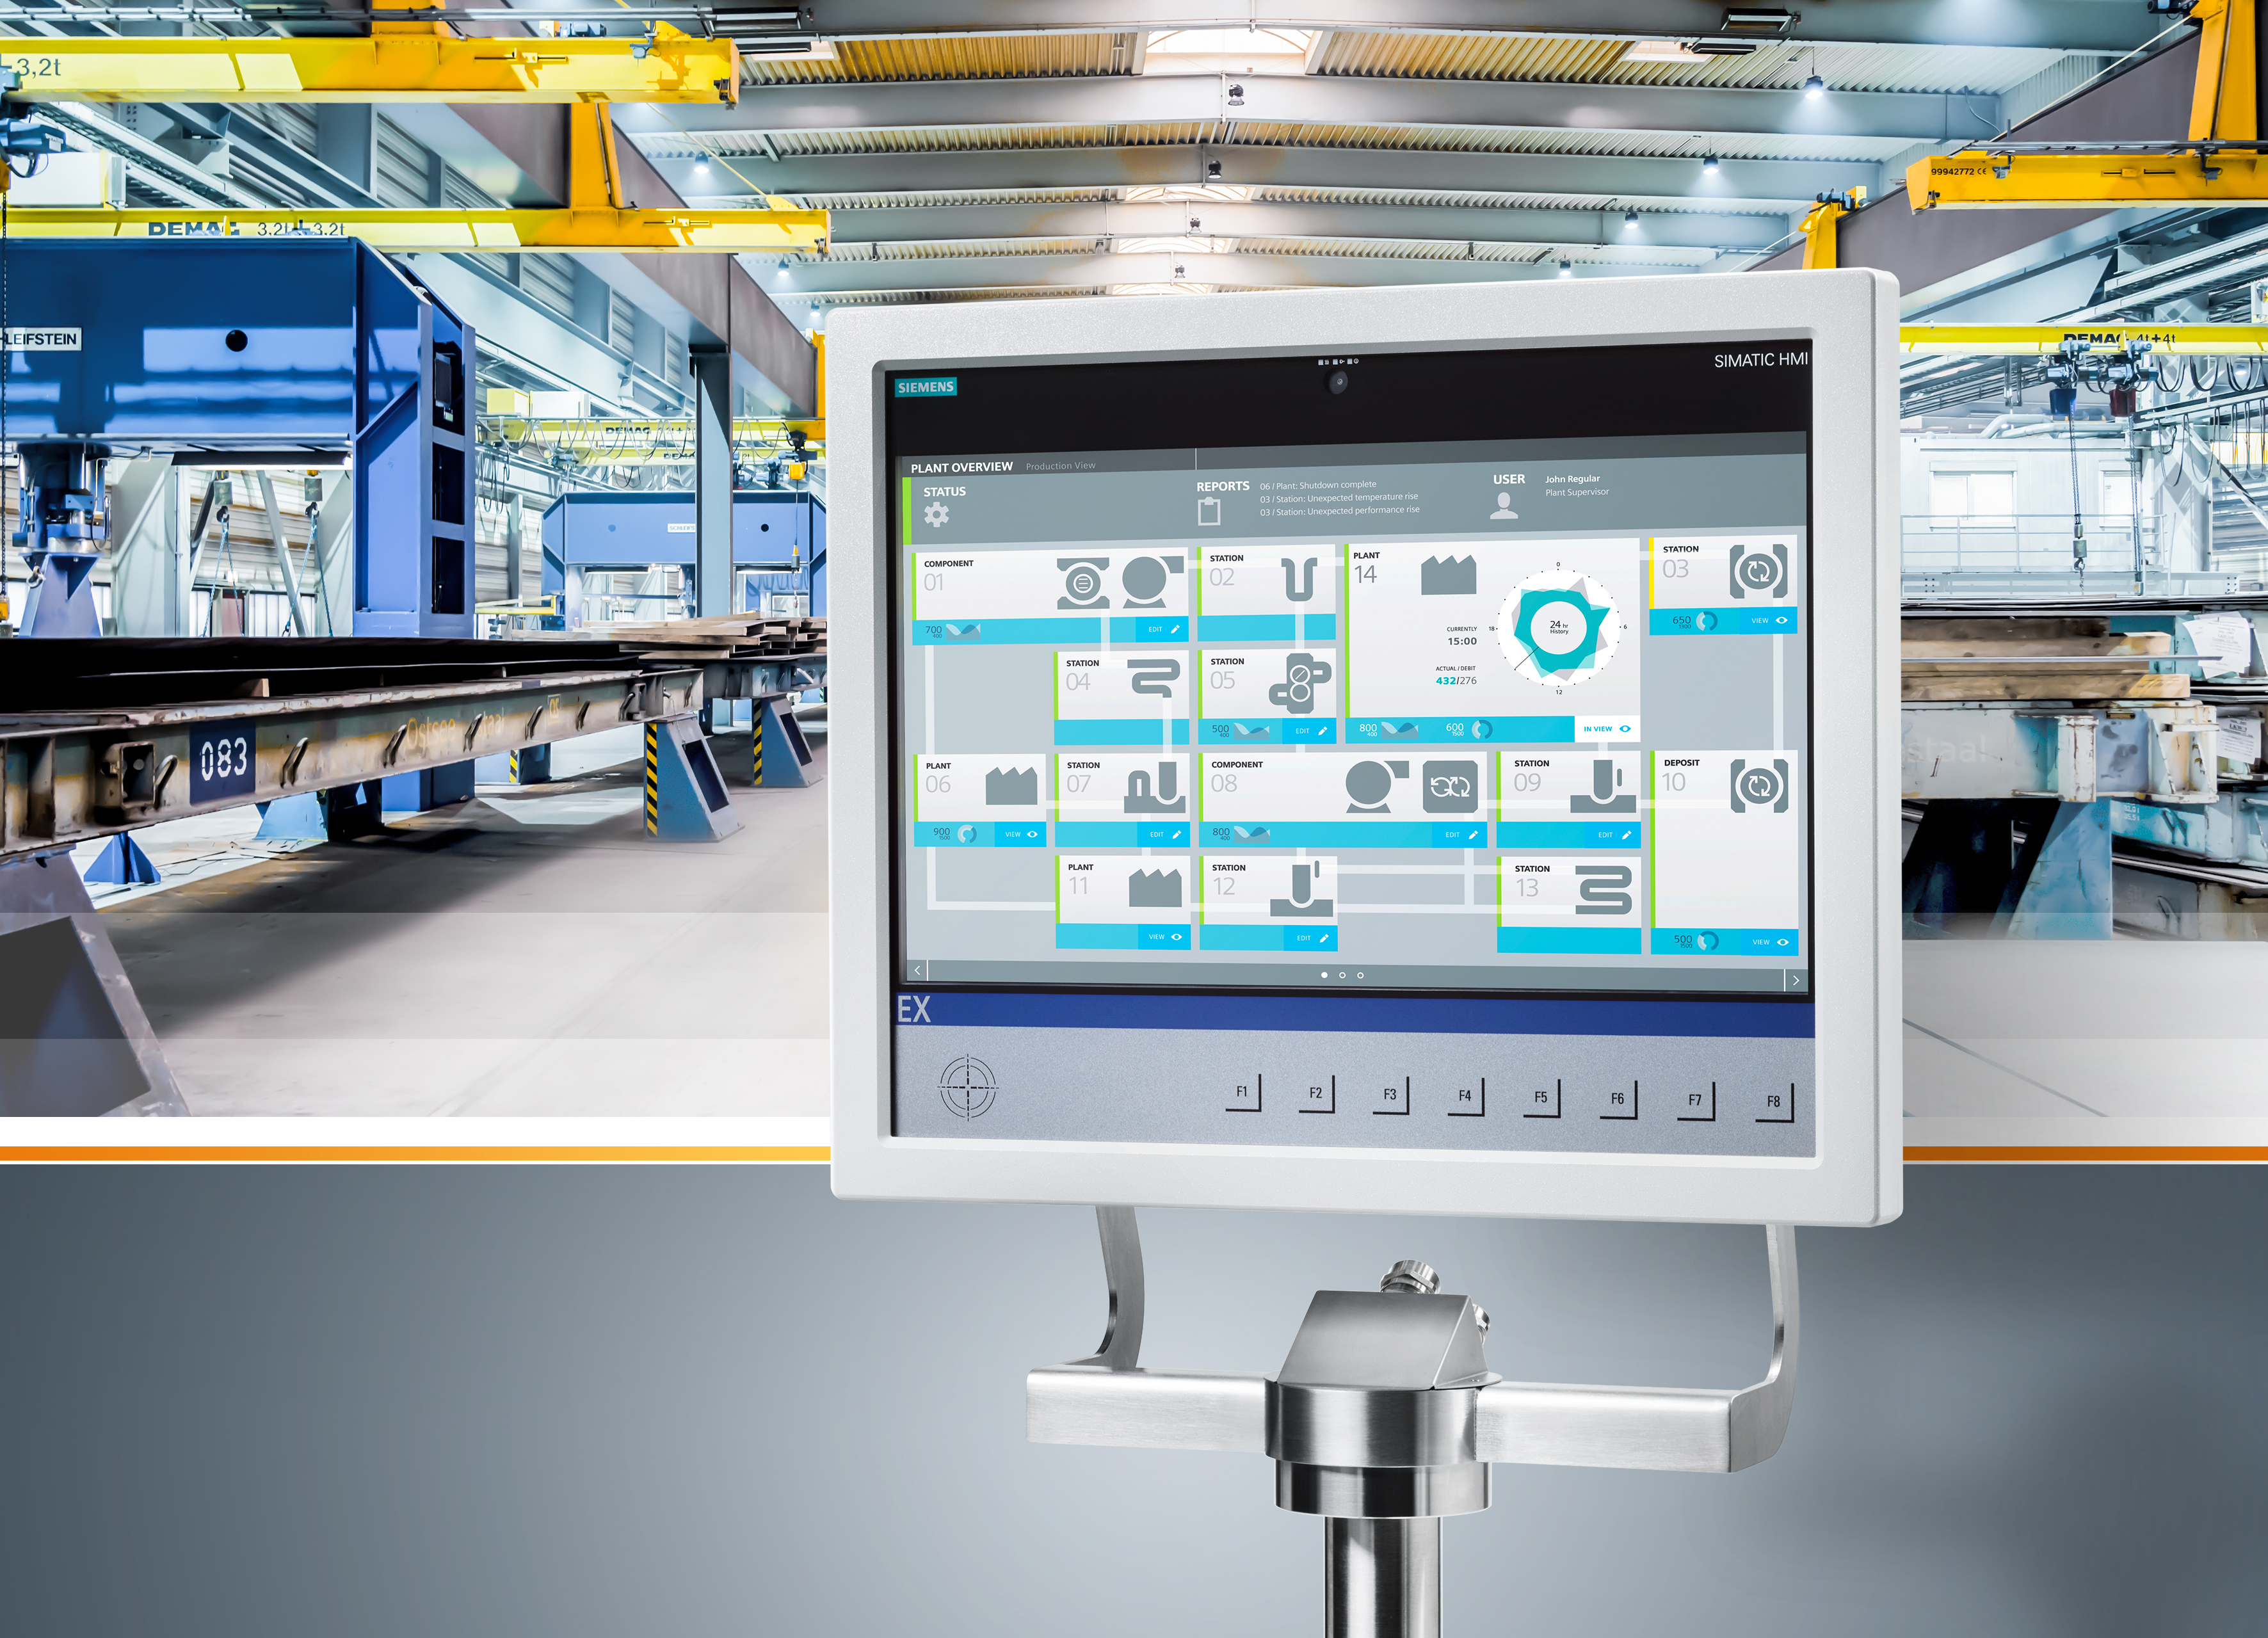 Devices for operator control and monitoring • INDUSTRY24h